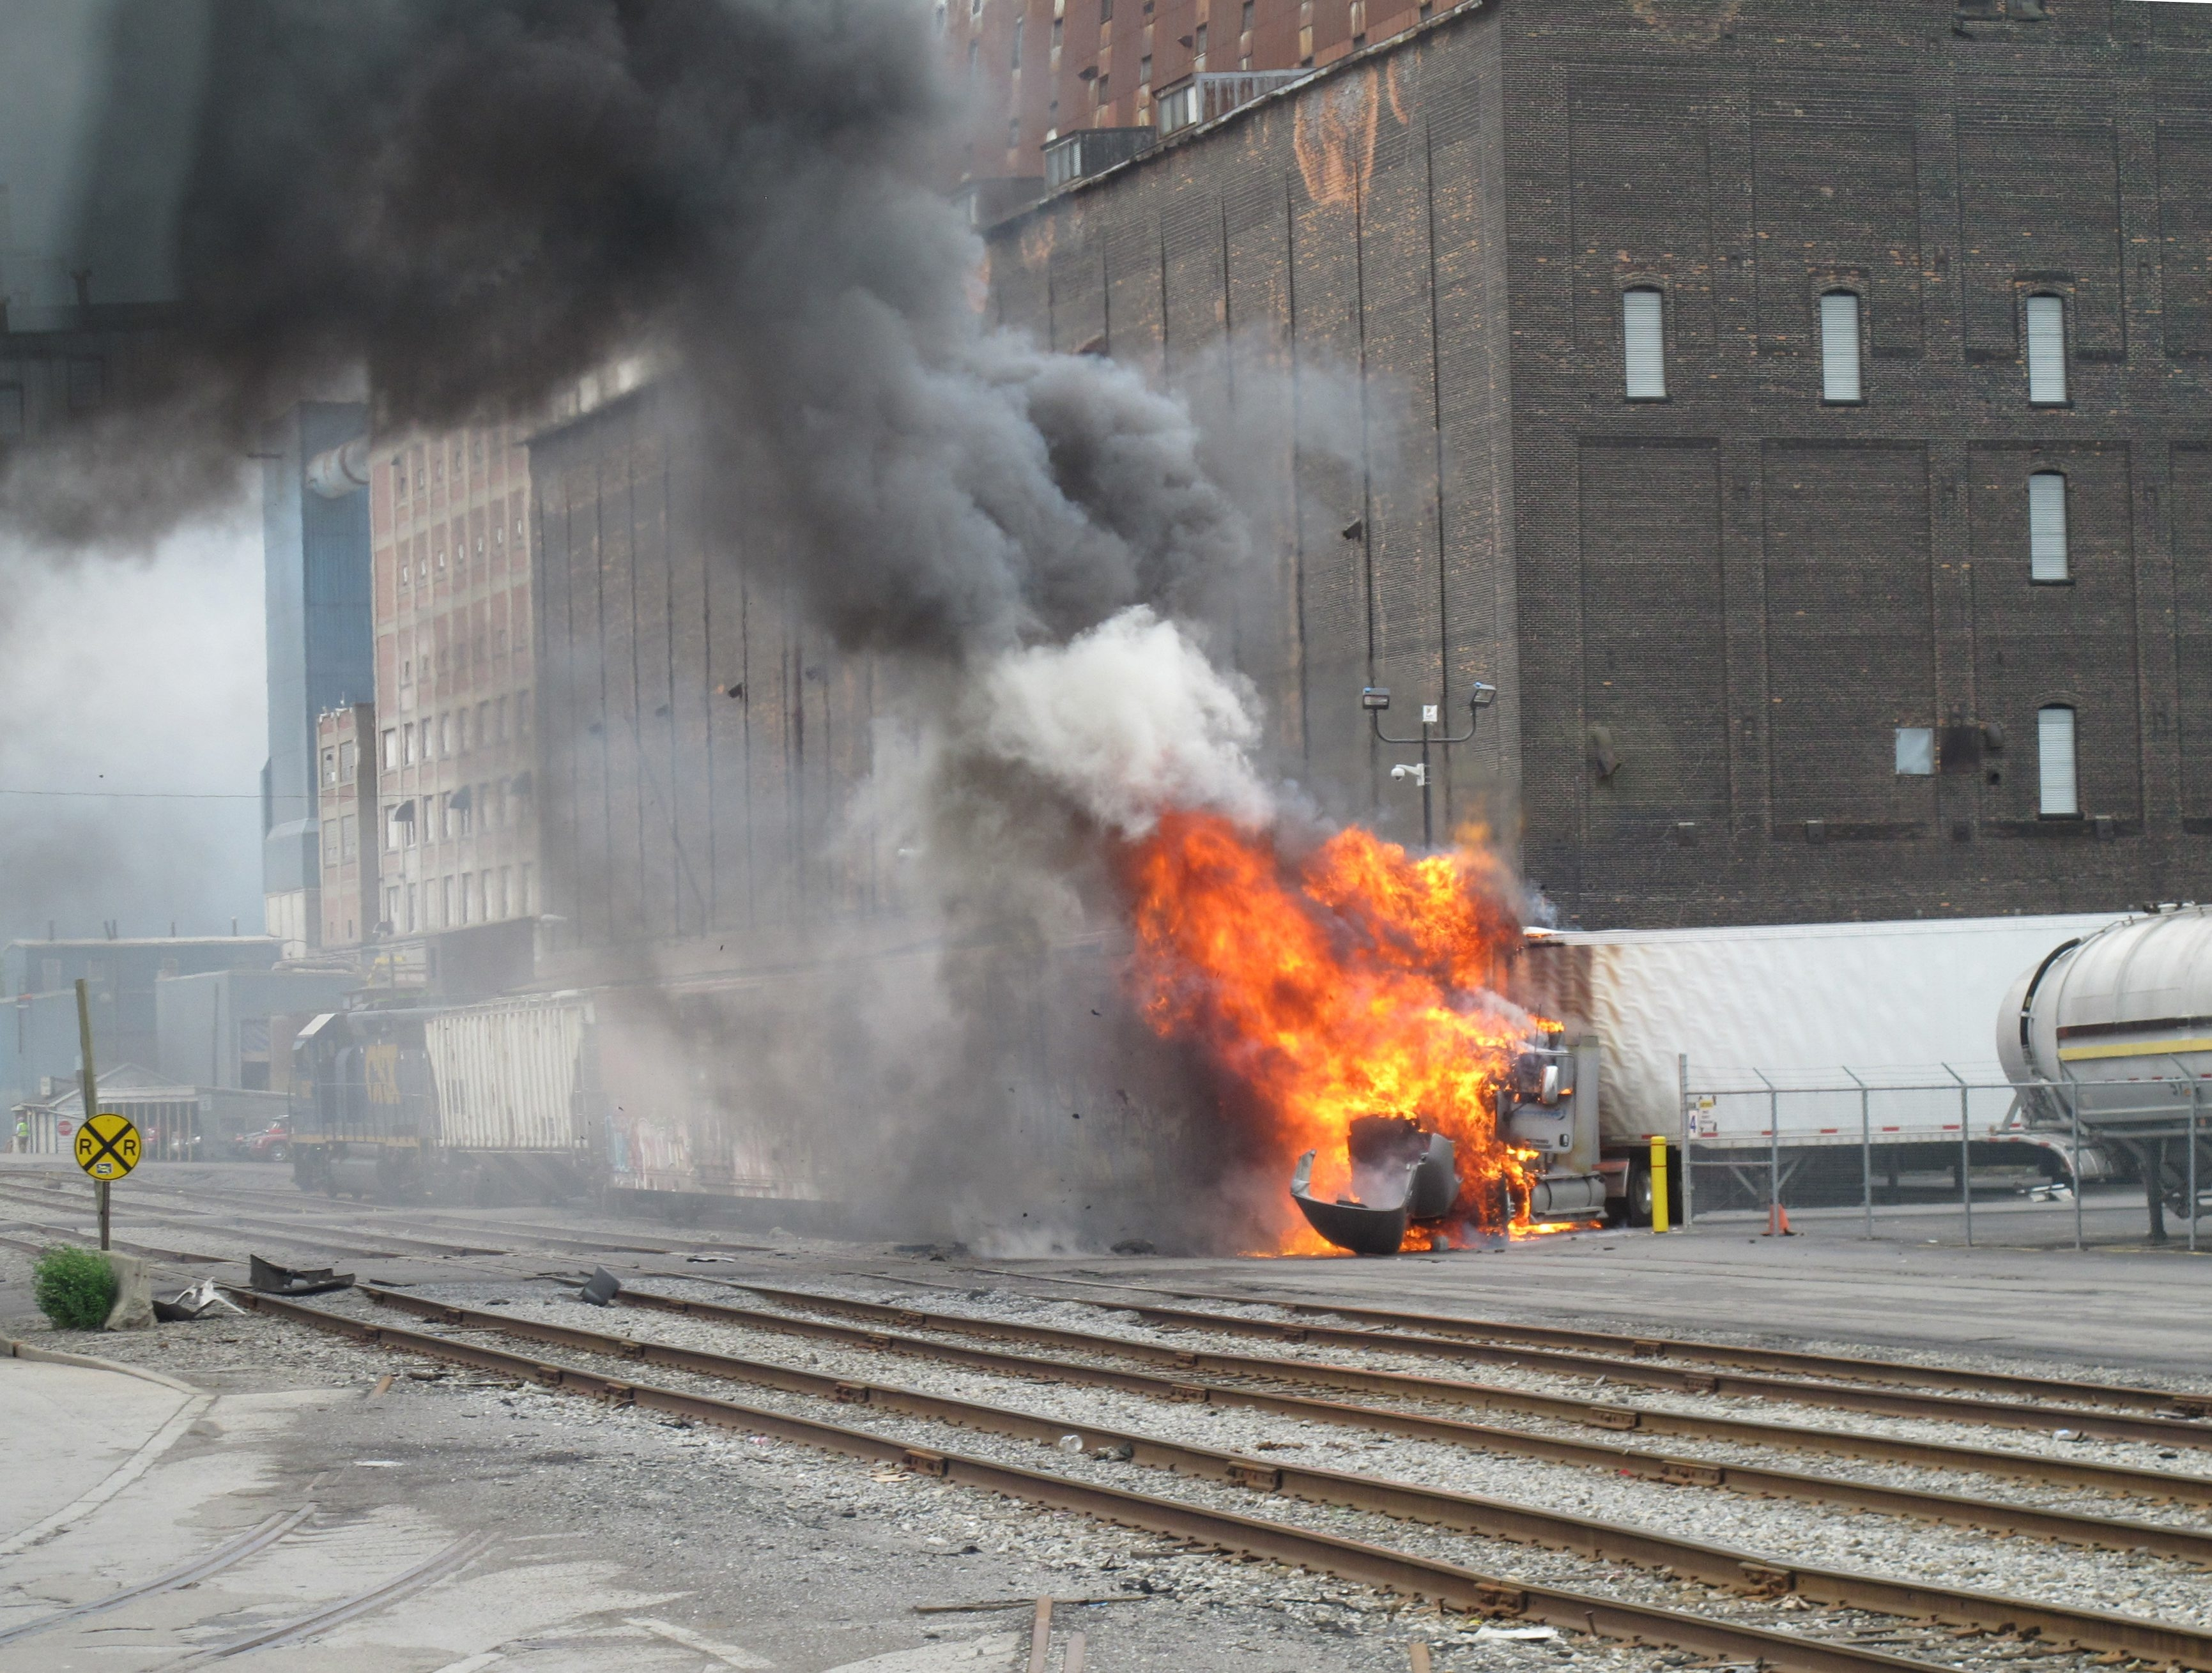 Flames engulf the cab of a tractor-trailer after it was hit by a CSX train on Ganson Street in Buffalo on Tuesday morning.